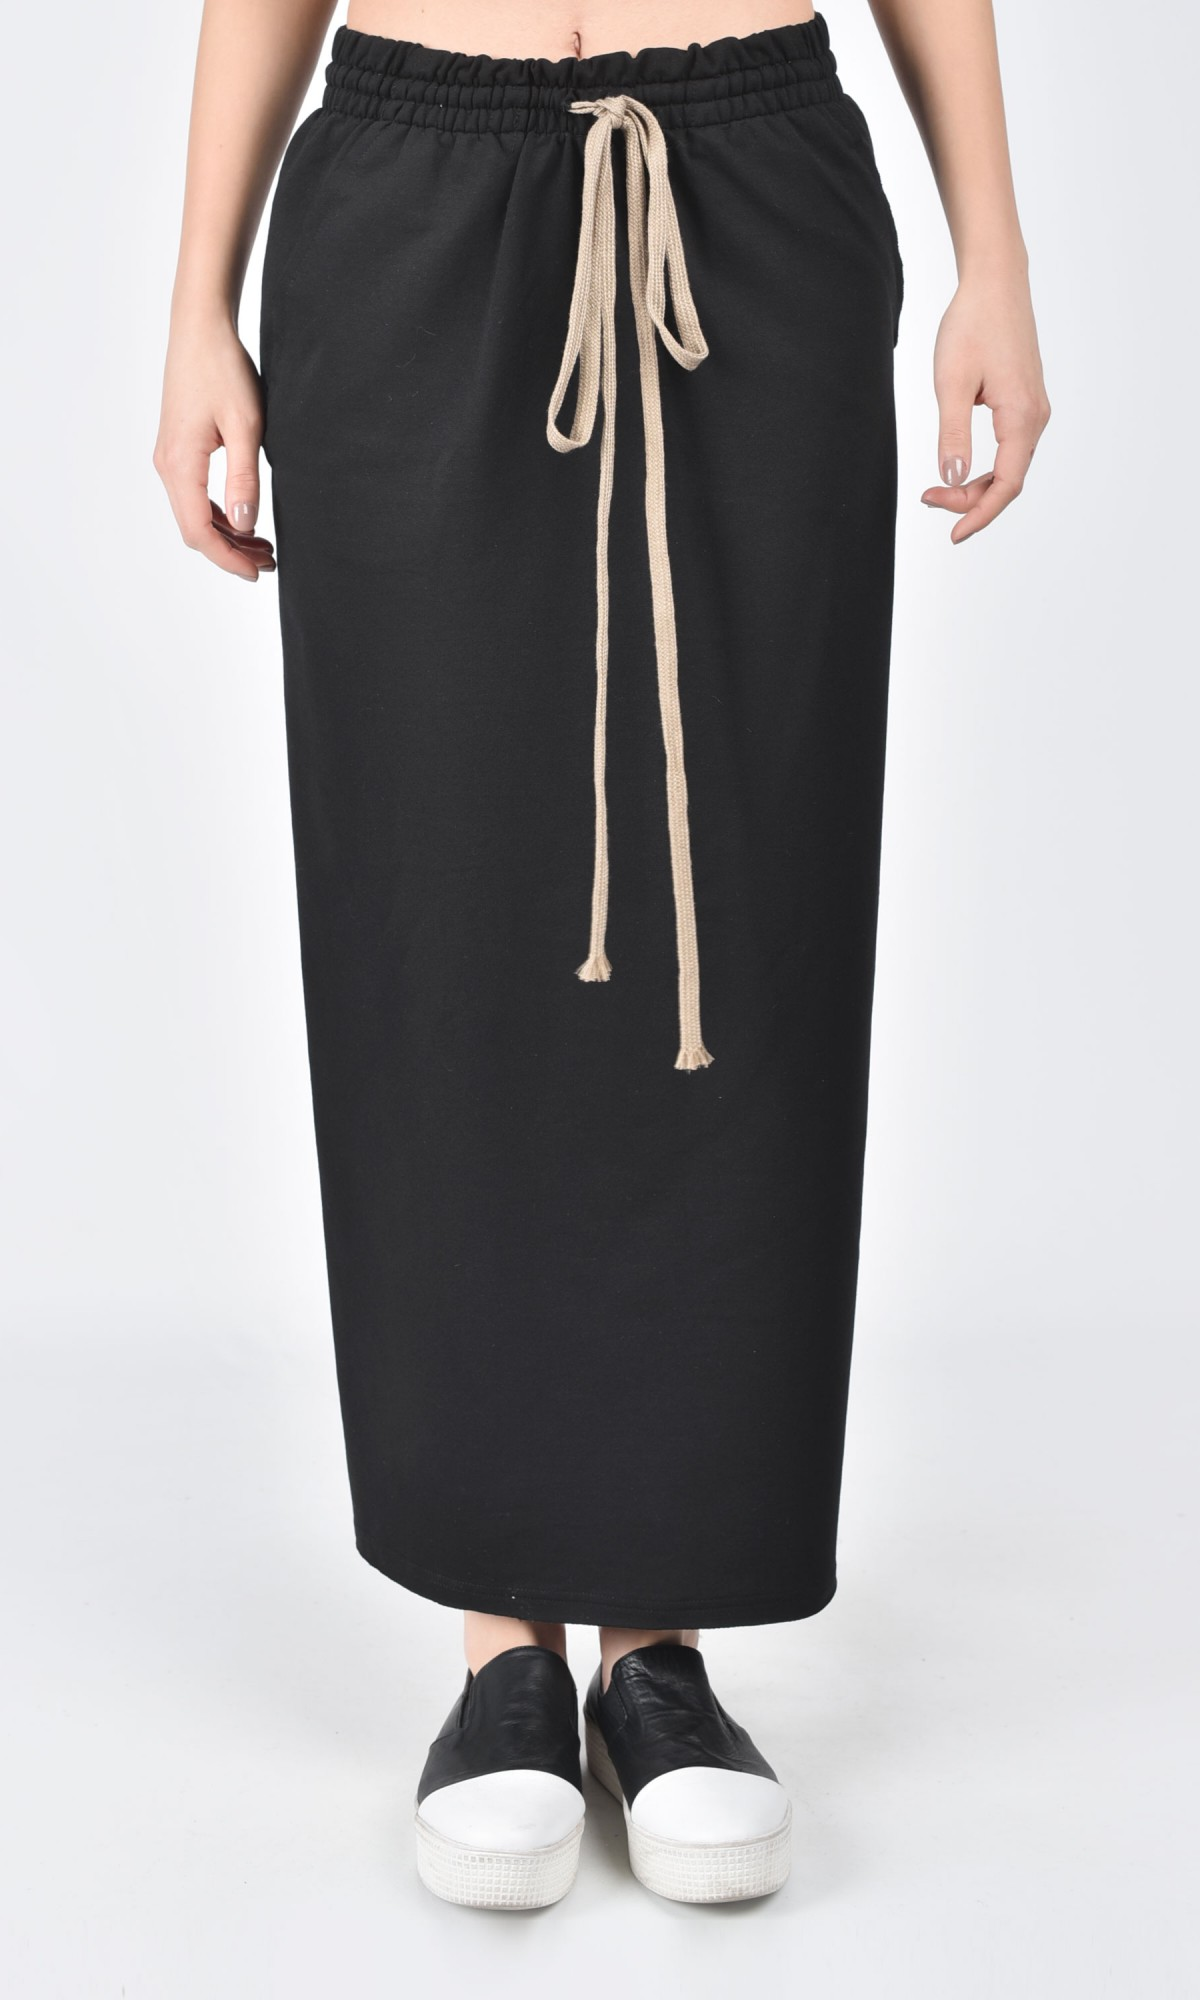 Skirts: Free Shipping on orders over $45 at getessay2016.tk - Your Online Skirts Store! Get 5% in rewards with Club O! Women's Patchwork Black And White Maxi Skirt - Elastic Waist - 36